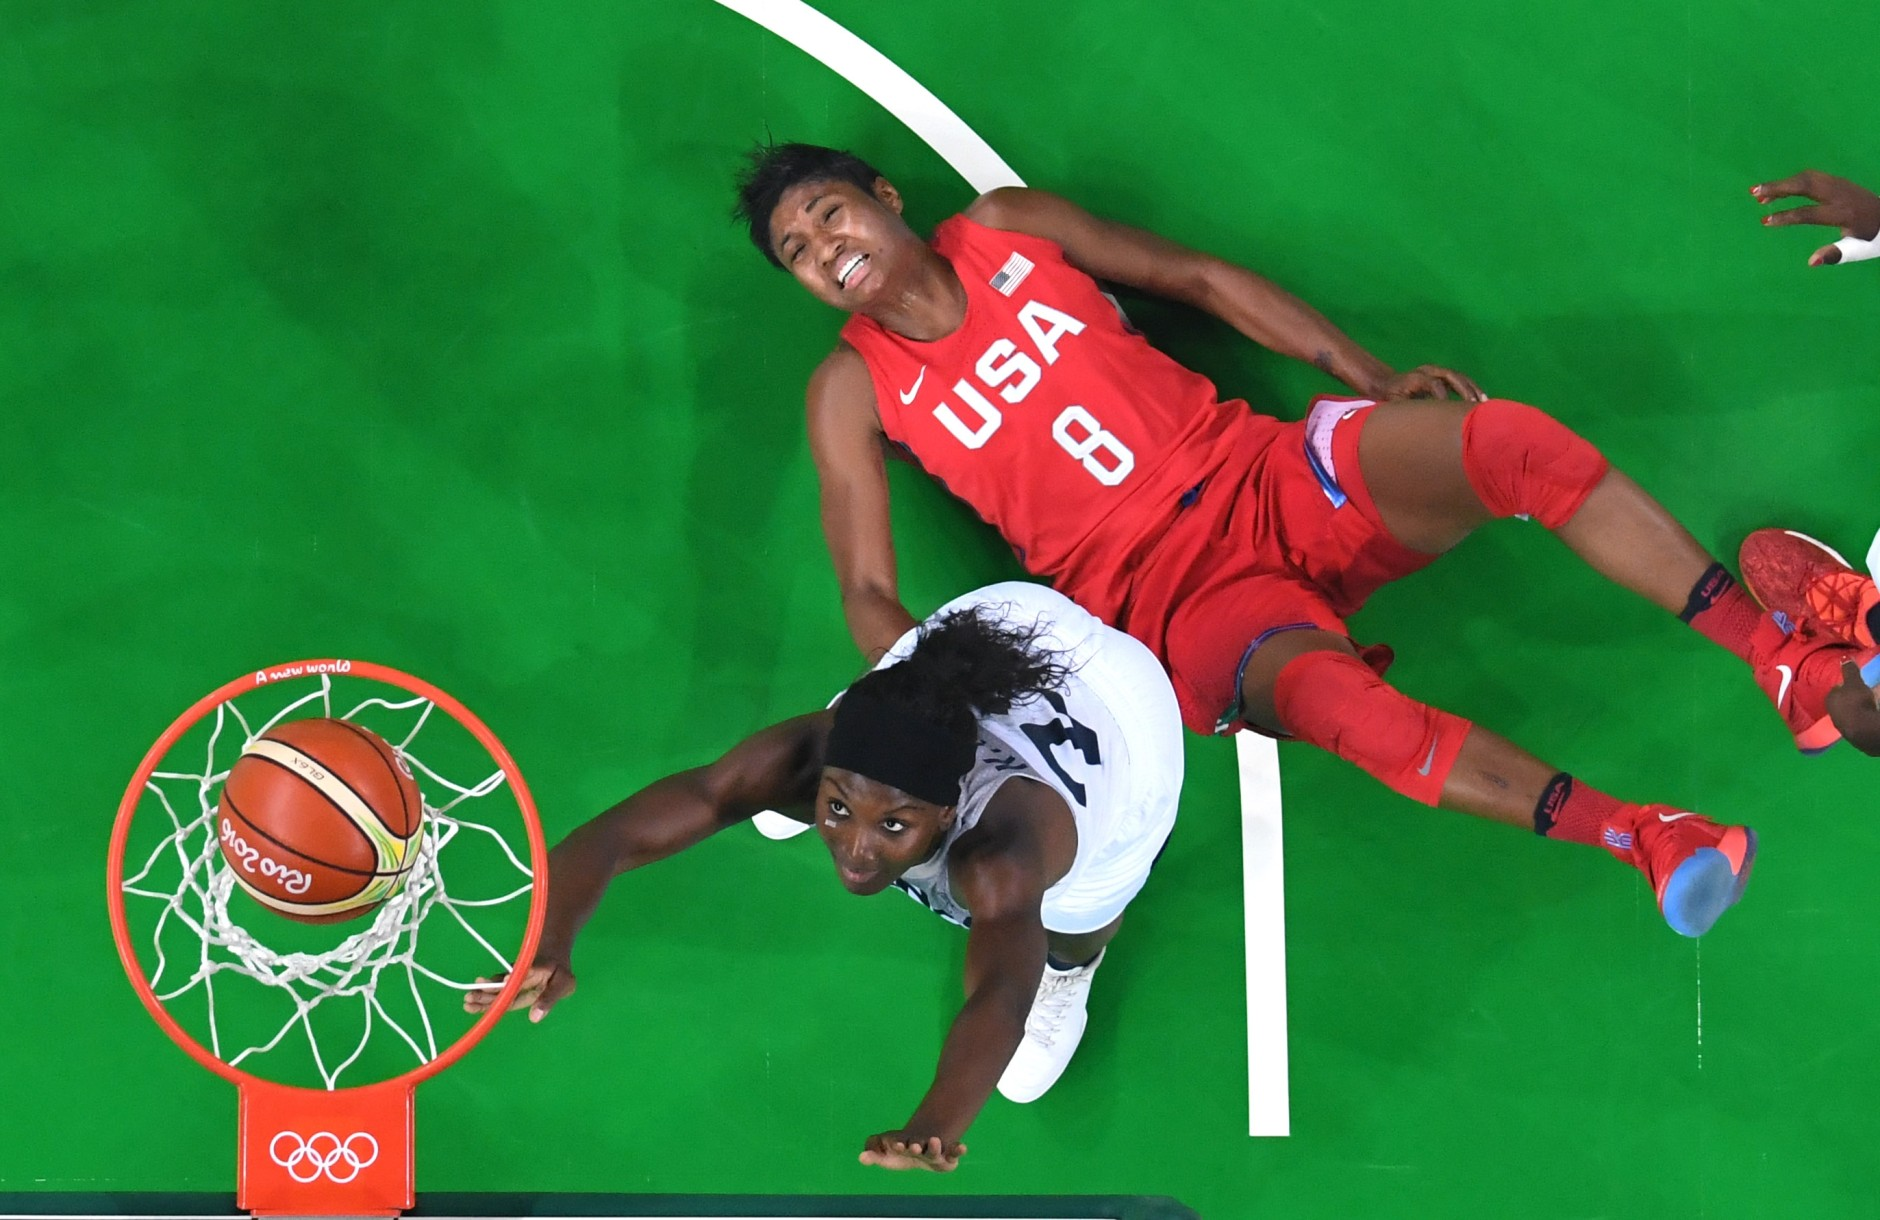 United States' Angel McCoughtry (8) falls to the floor as her shot over France's Laetitia Kamba, left, falls through the basket during a women's semifinals basketball game at the 2016 Summer Olympics in Rio de Janeiro, Brazil, Thursday, Aug. 18, 2016. (Andrej Isakovic/Pool Photo via AP)